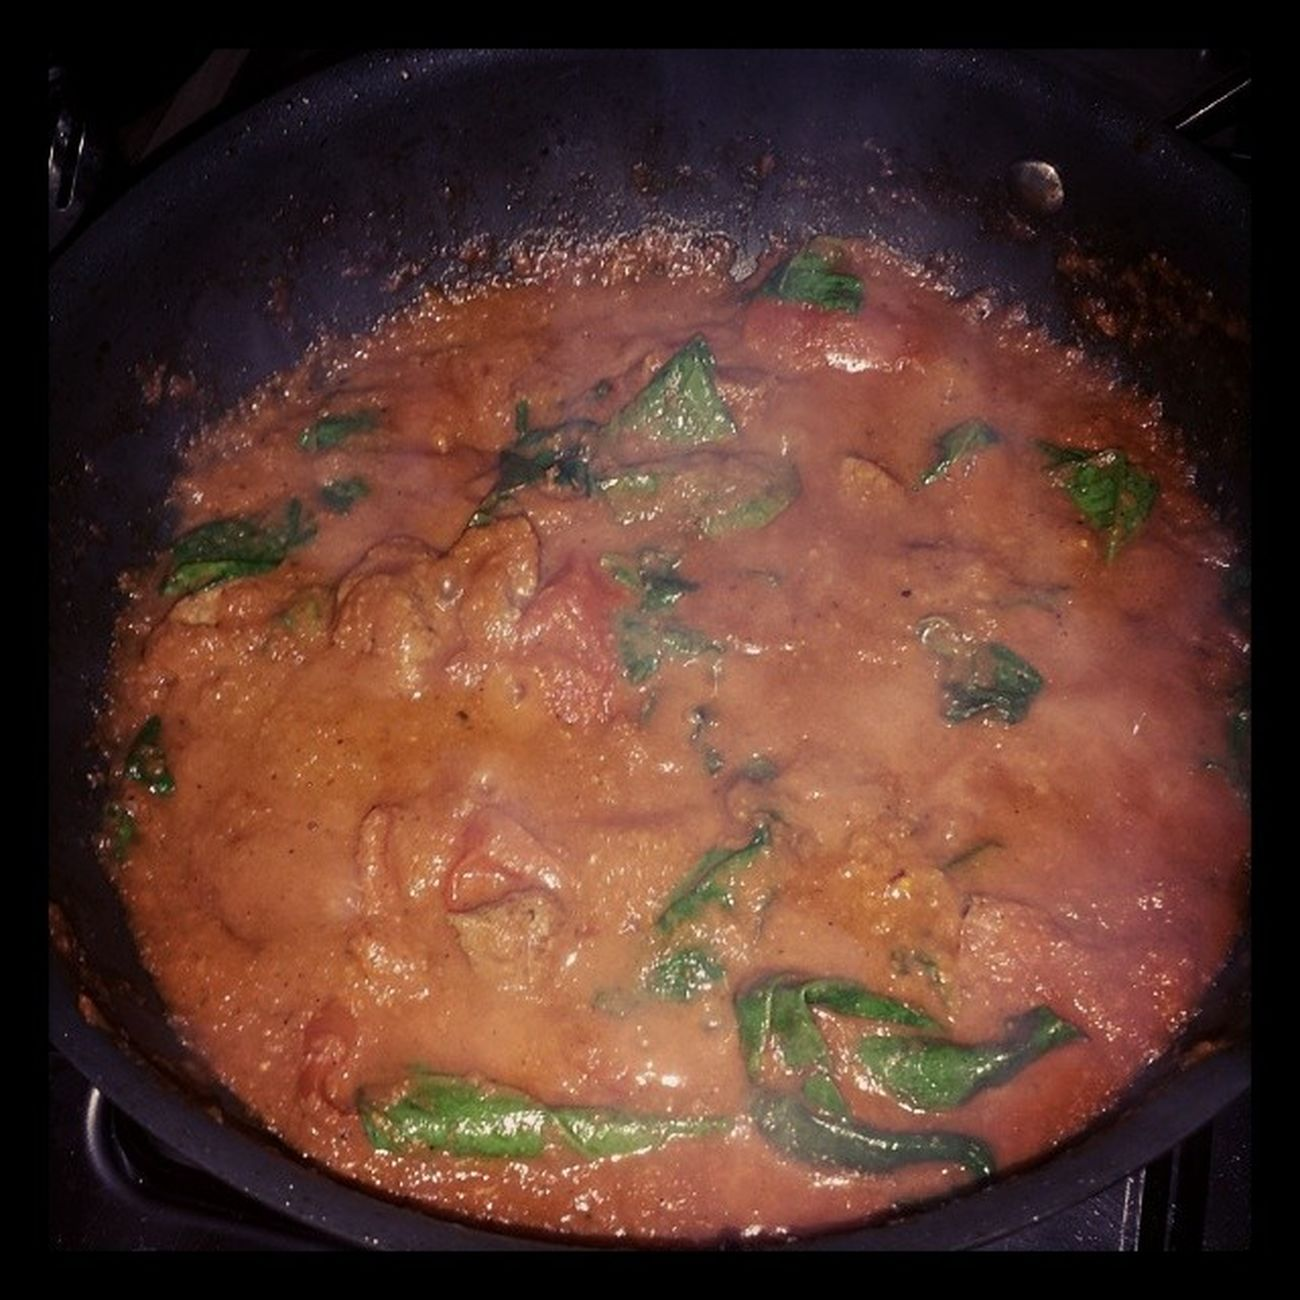 Homemade Indian Lamb Balti curry food foodporn sizzling iam李小龍 instacapture instafood instagrammer dinner loveit obsessed SutroFilter addicted